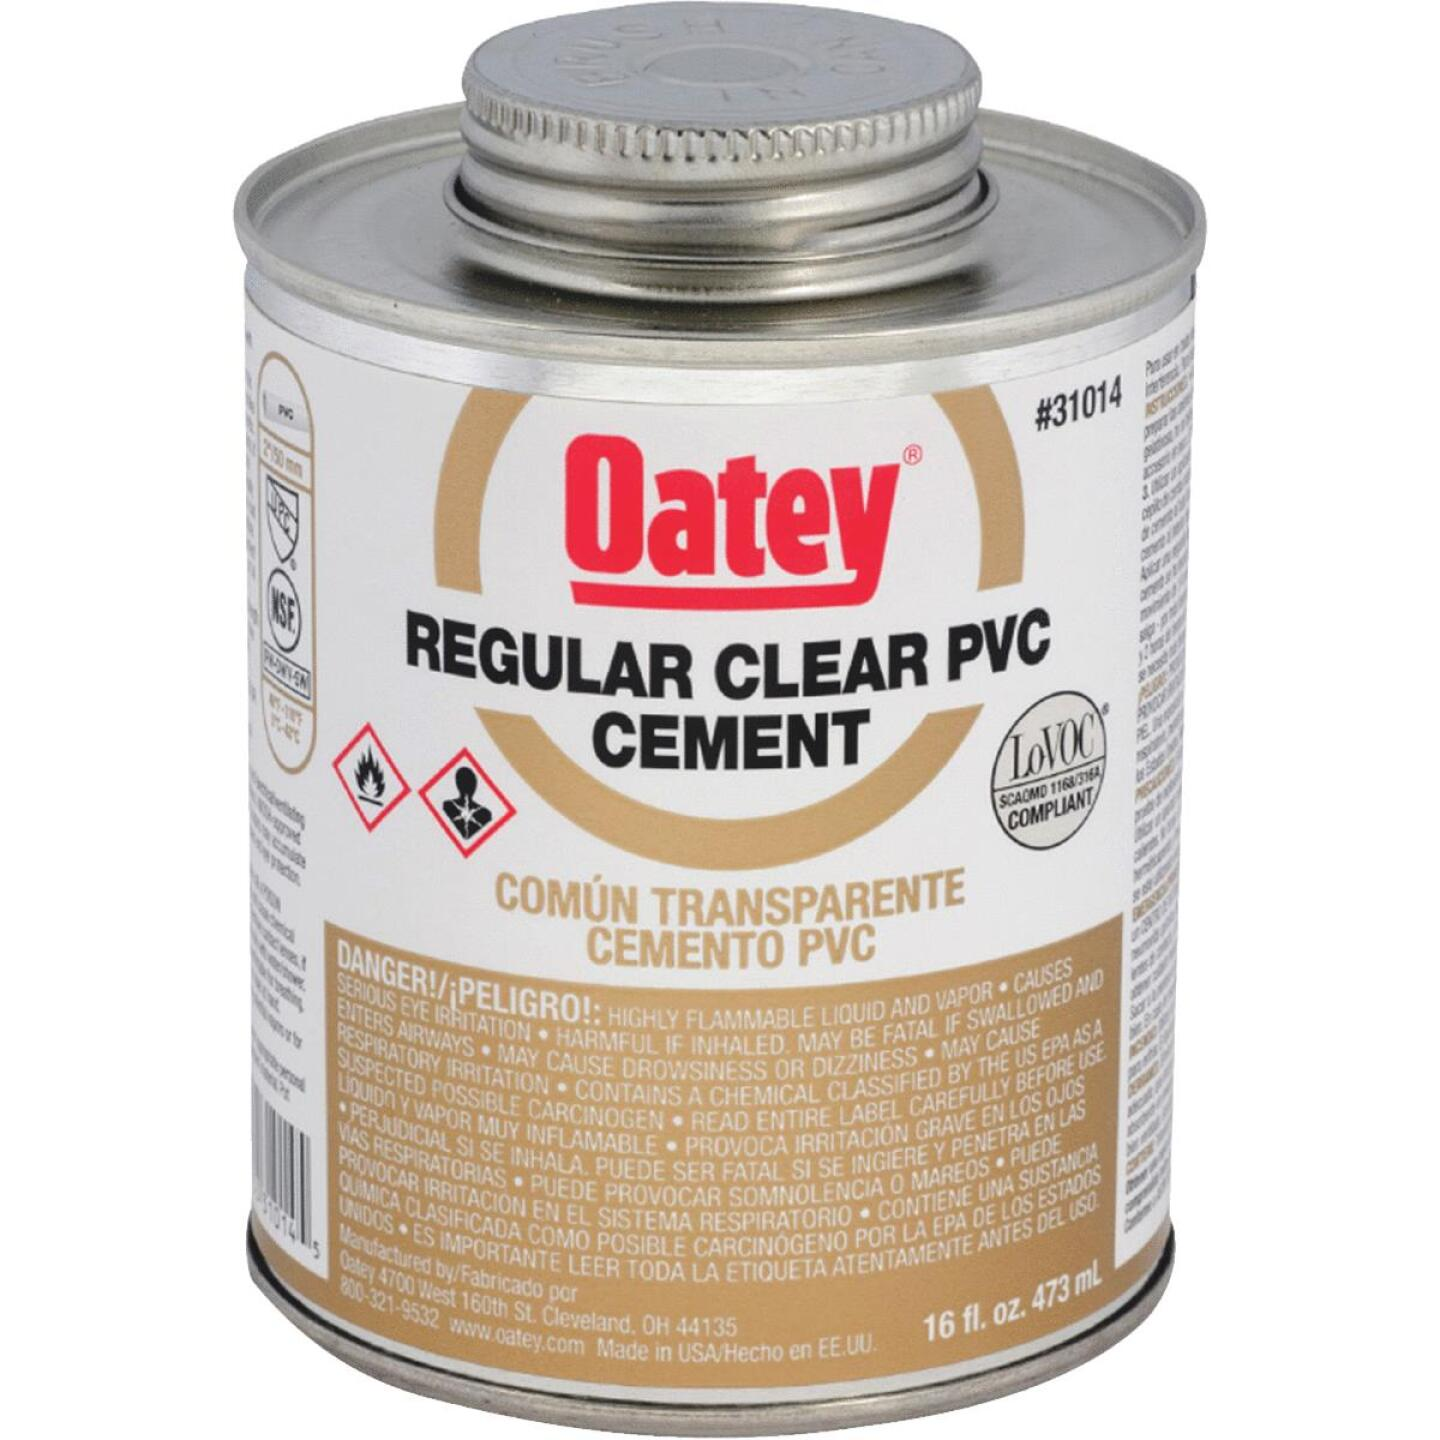 Oatey 16 Oz. Regular Bodied Clear PVC Cement Image 1